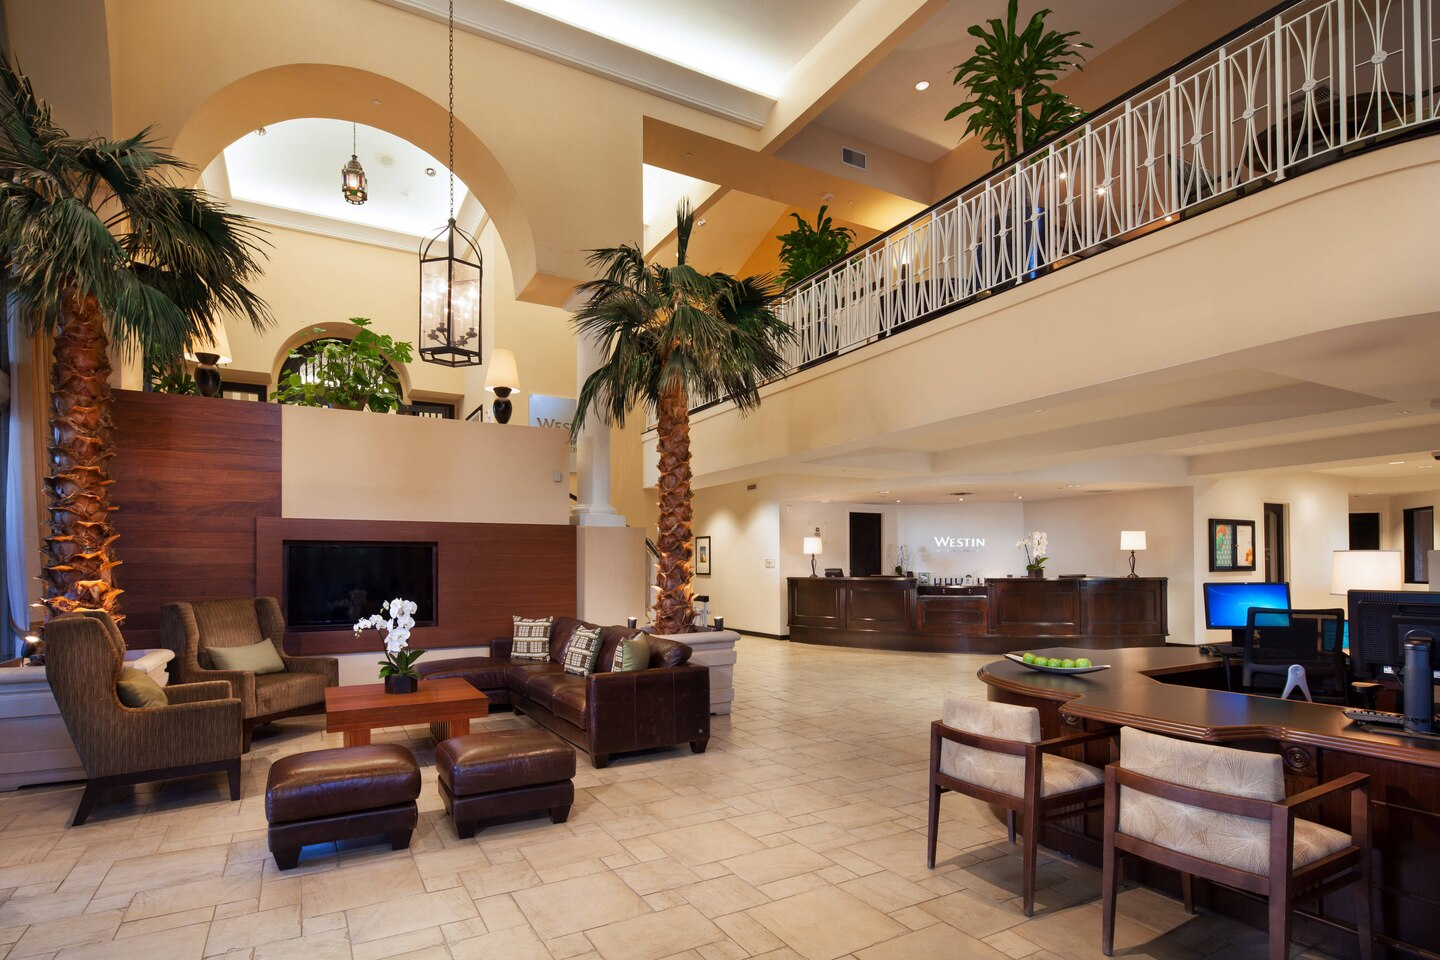 psppw-the-westin-mission-hills-resort-villas-palm-springs-lobby